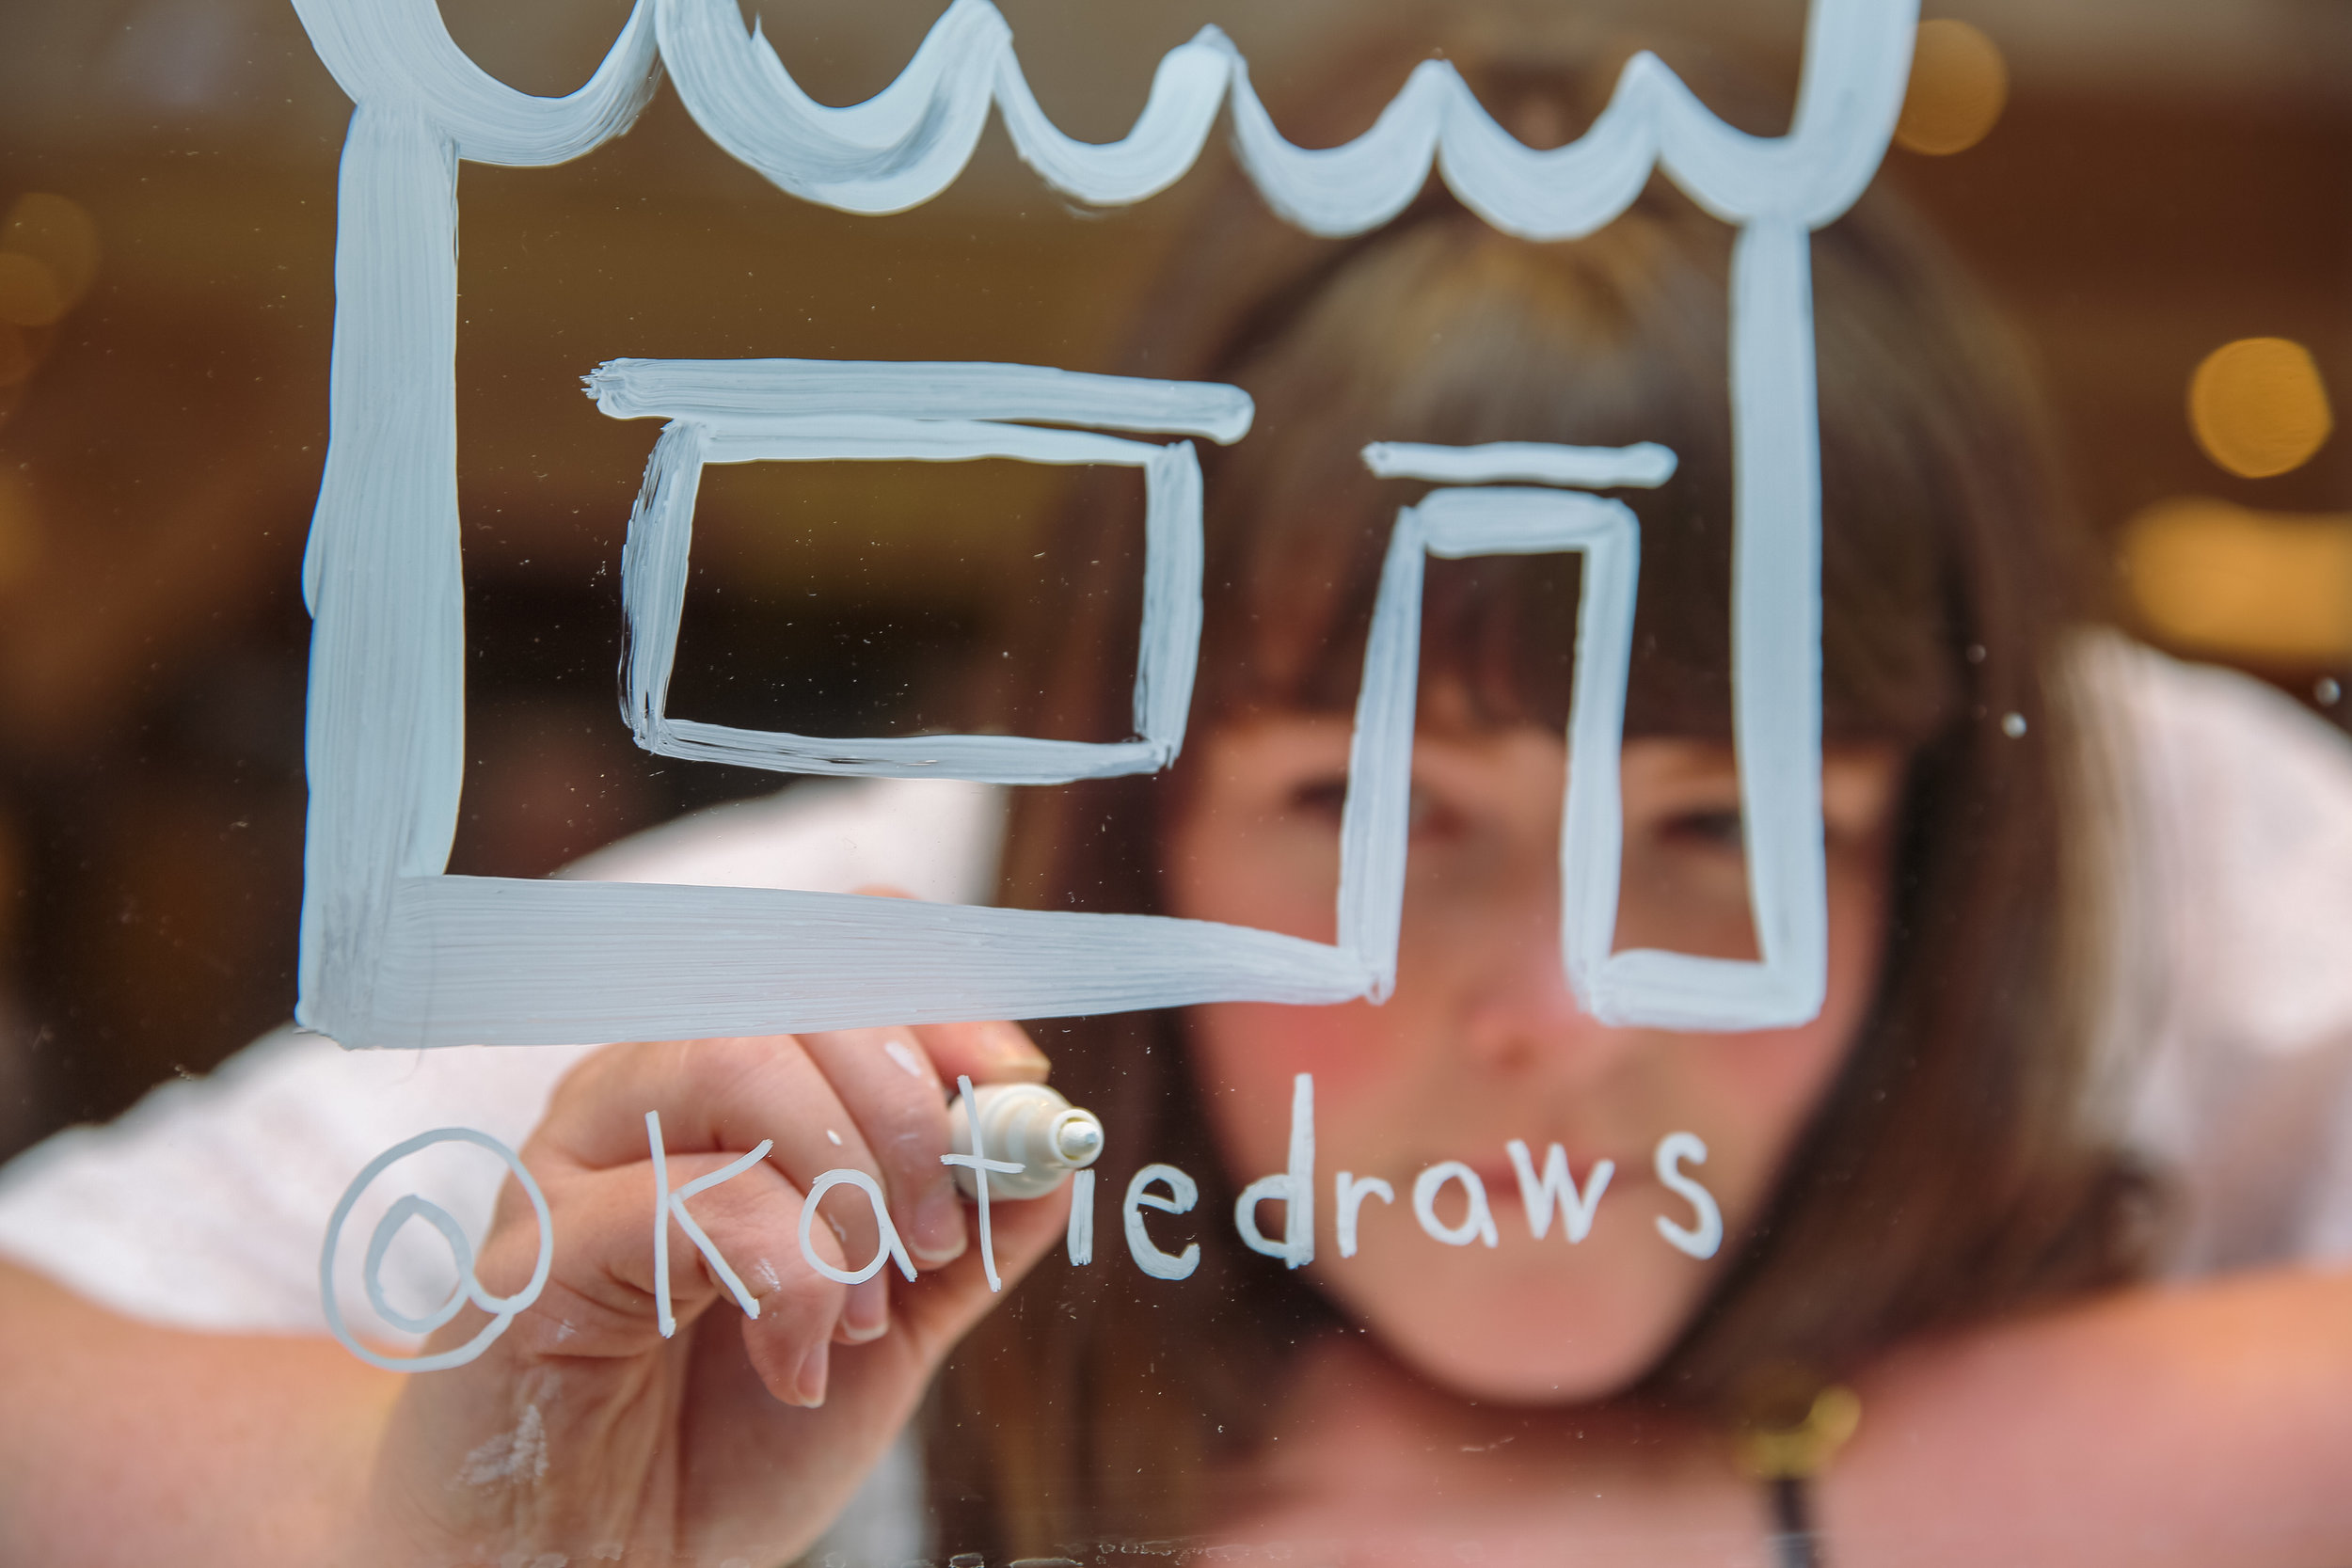 environmentally friendly brand experience live illustration drawing window painting